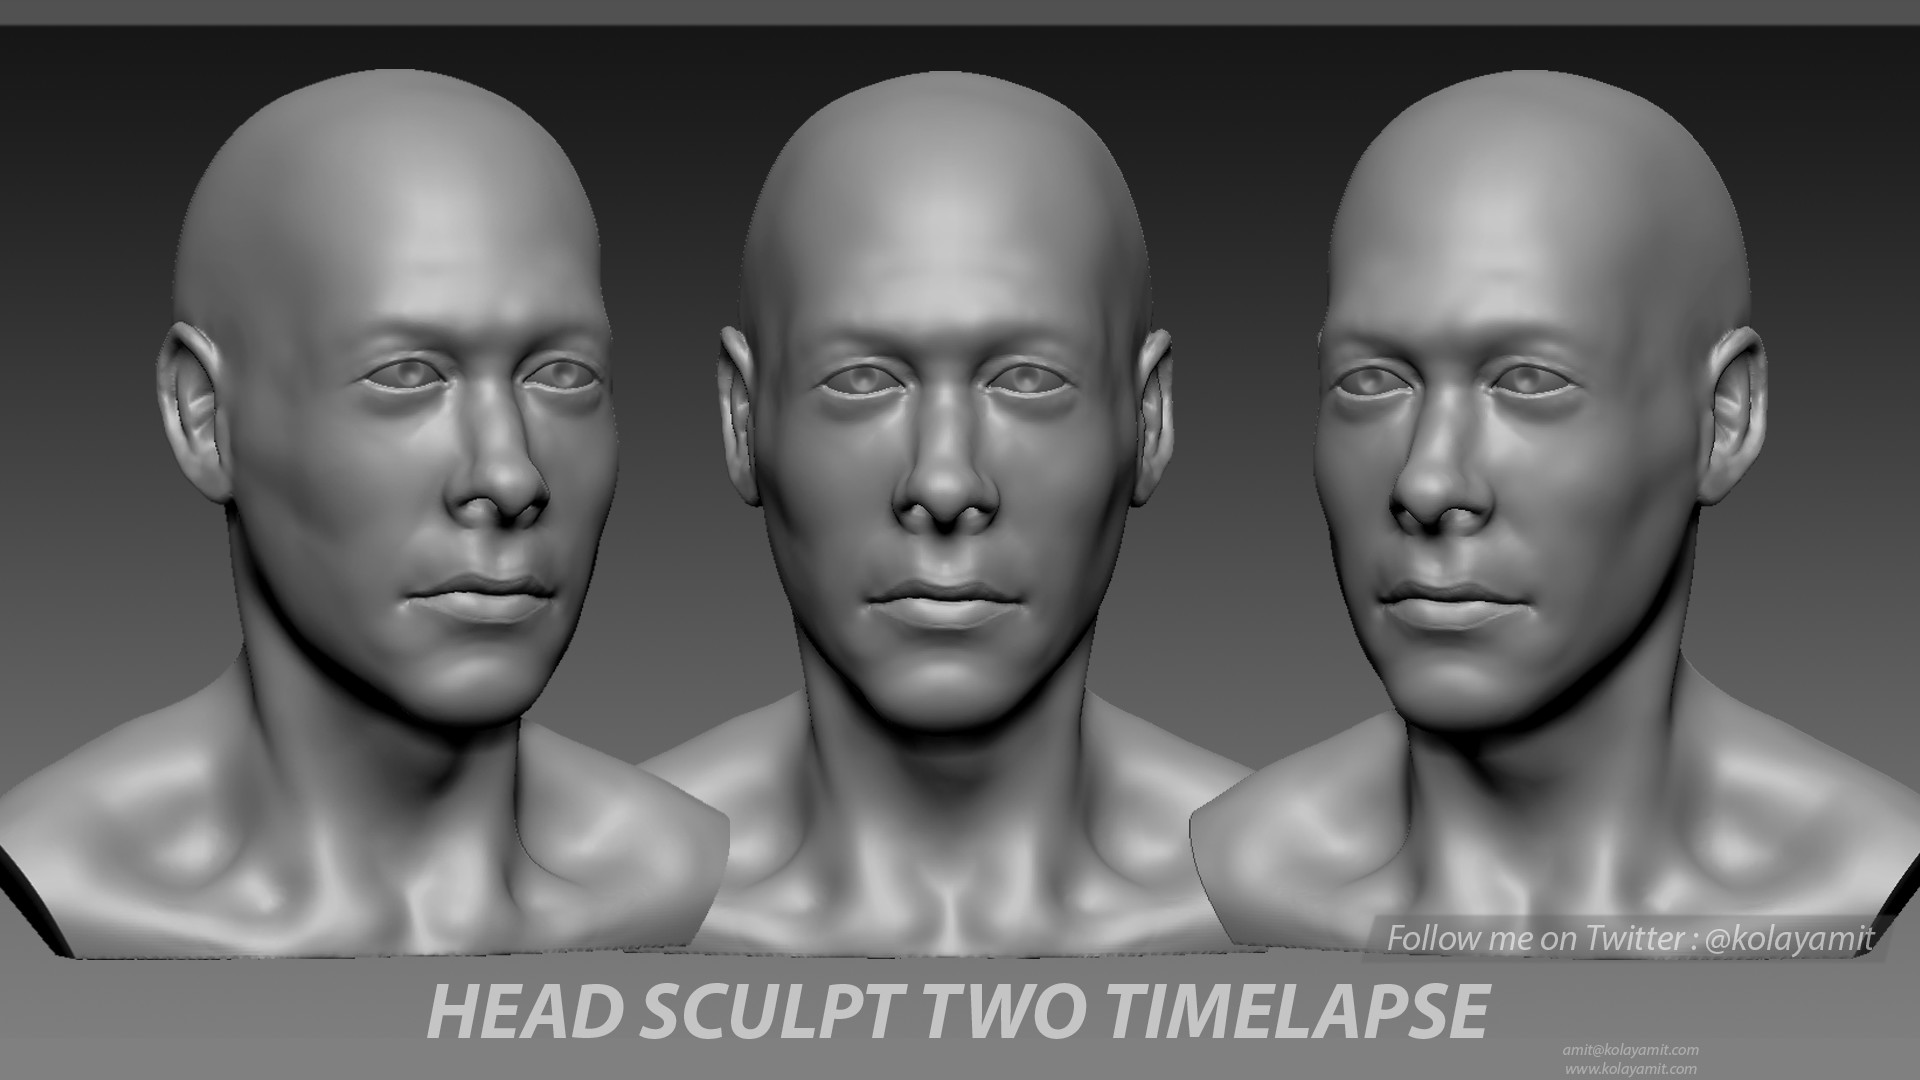 Head Sculpt Two Timelapse.